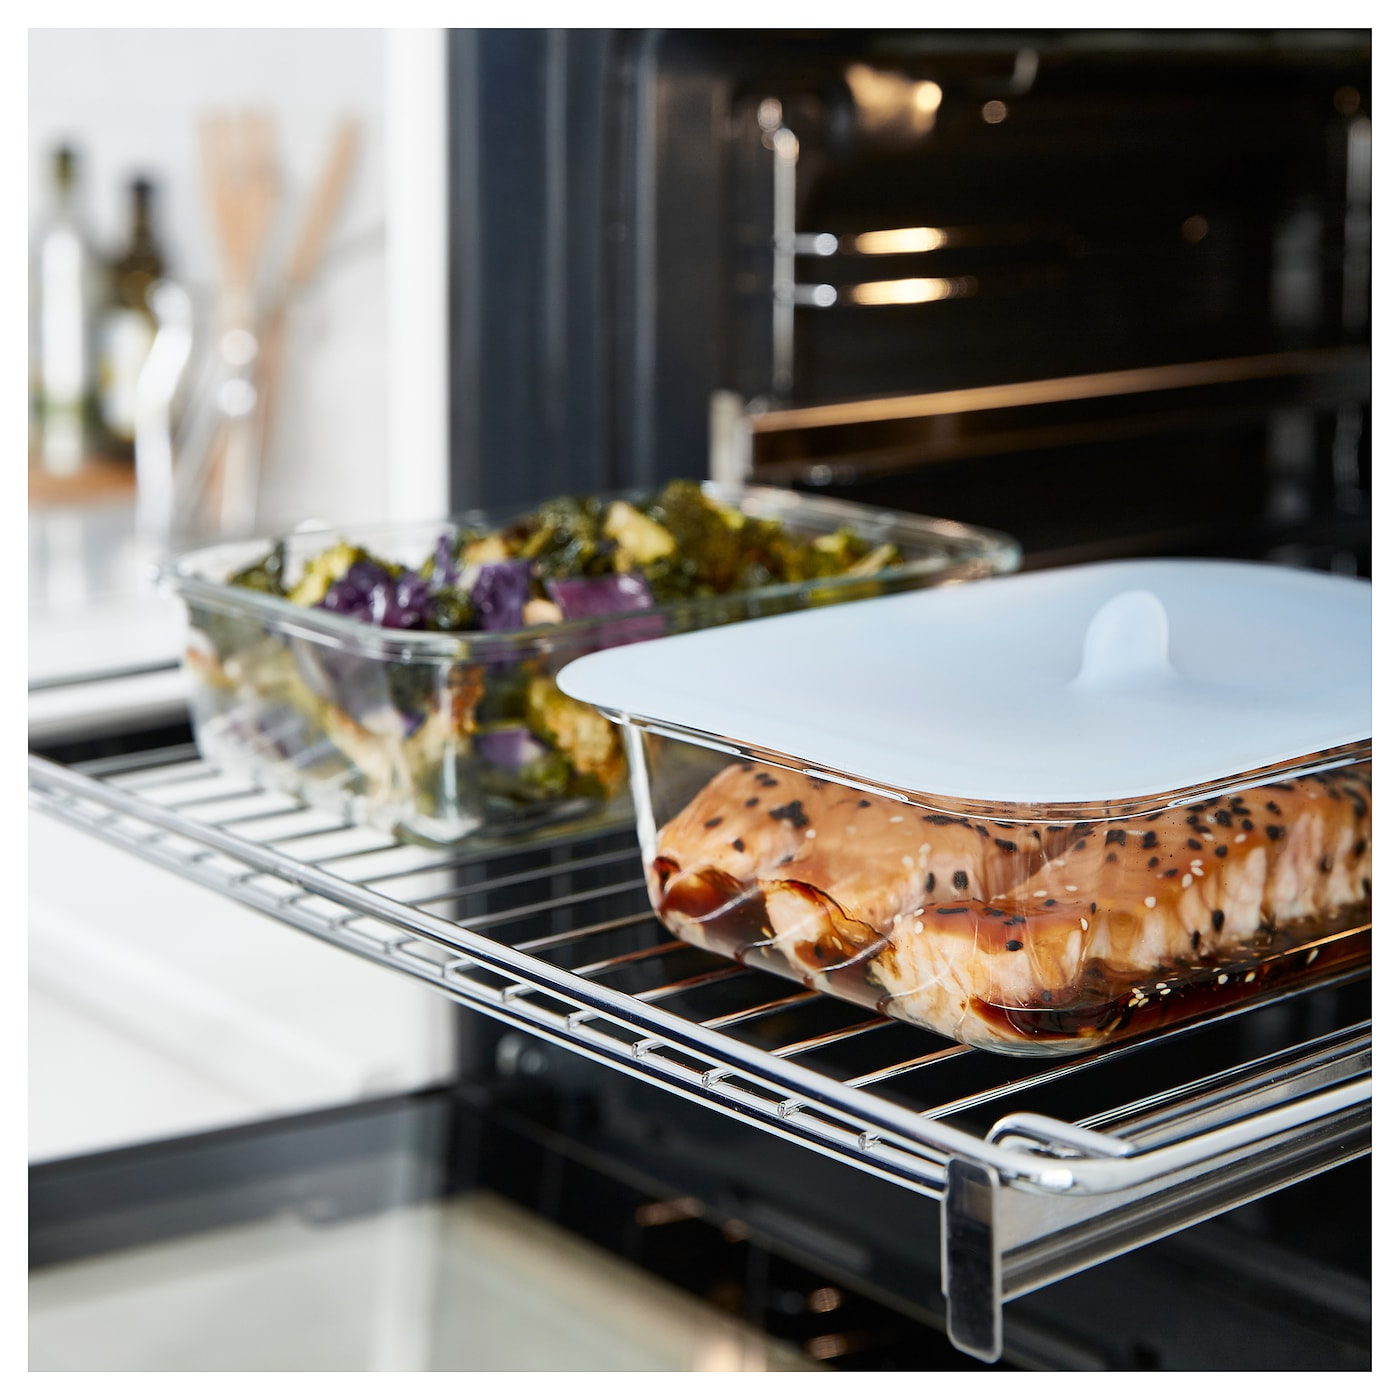 IKEA IKEA 365+ lid Can be used to protect from splatter in the oven and the microwave.